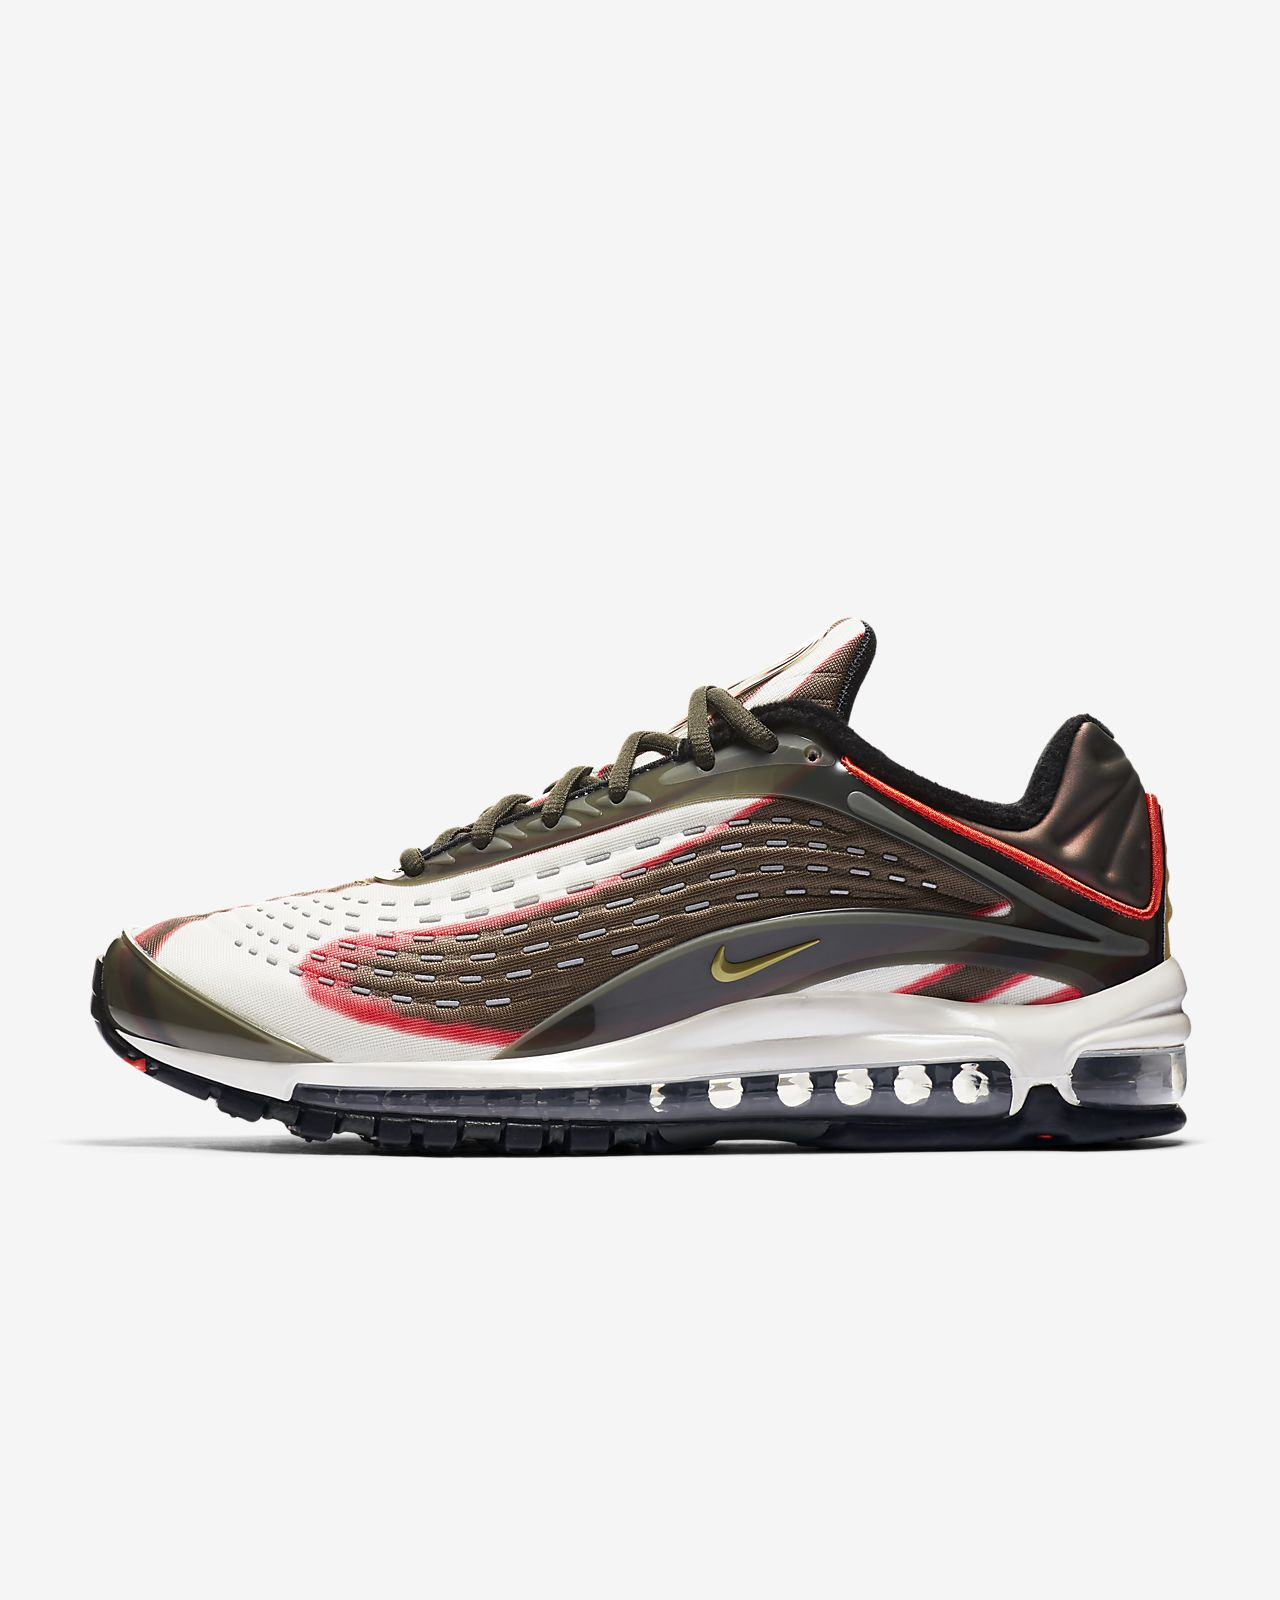 2f88071aa31c9 Chaussure Nike Air Max Deluxe pour Homme. Nike.com CA